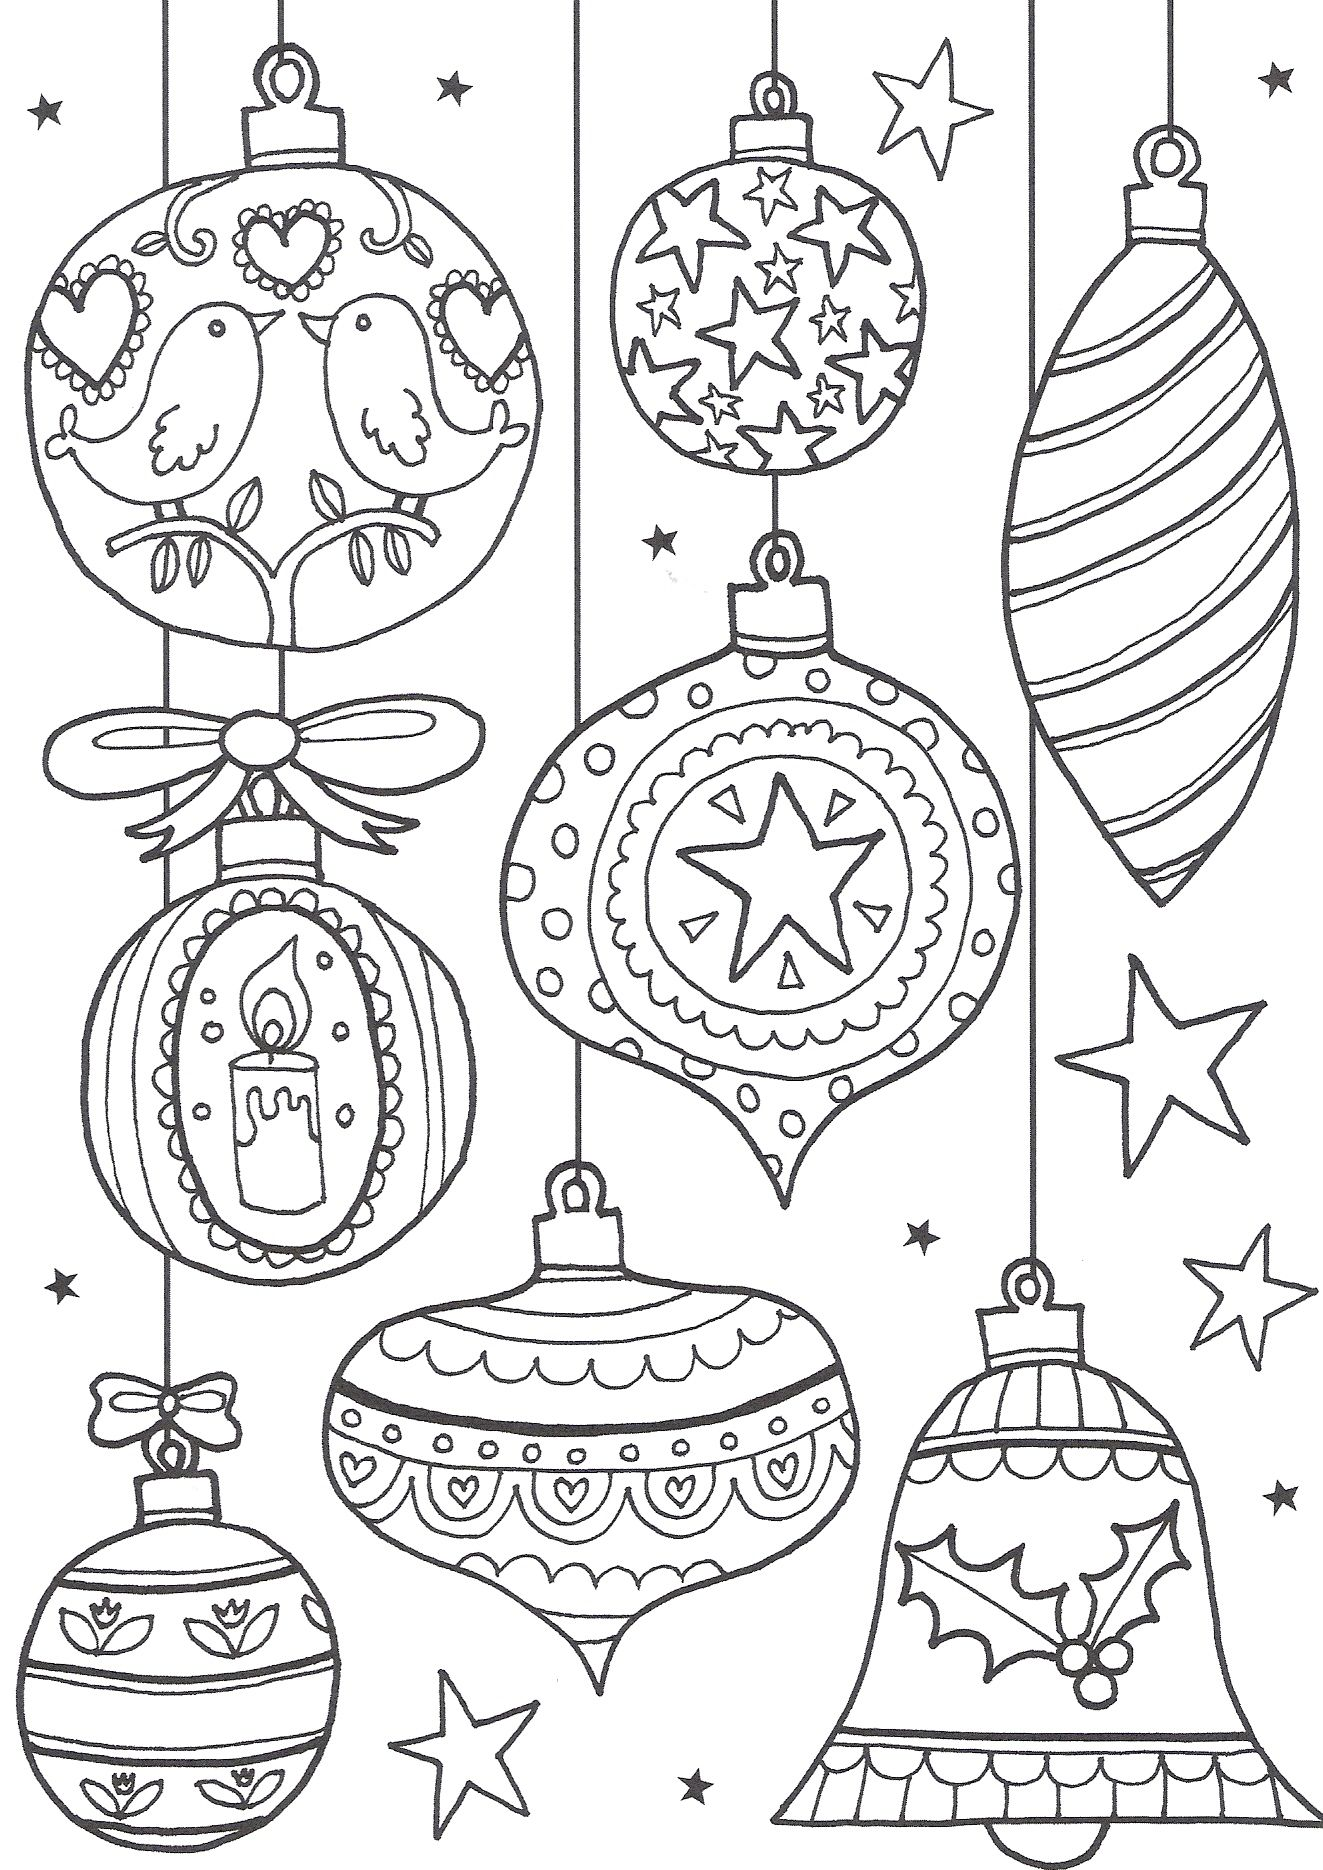 Christmas Coloring Free Pages With Colouring For Adults The Ultimate Roundup